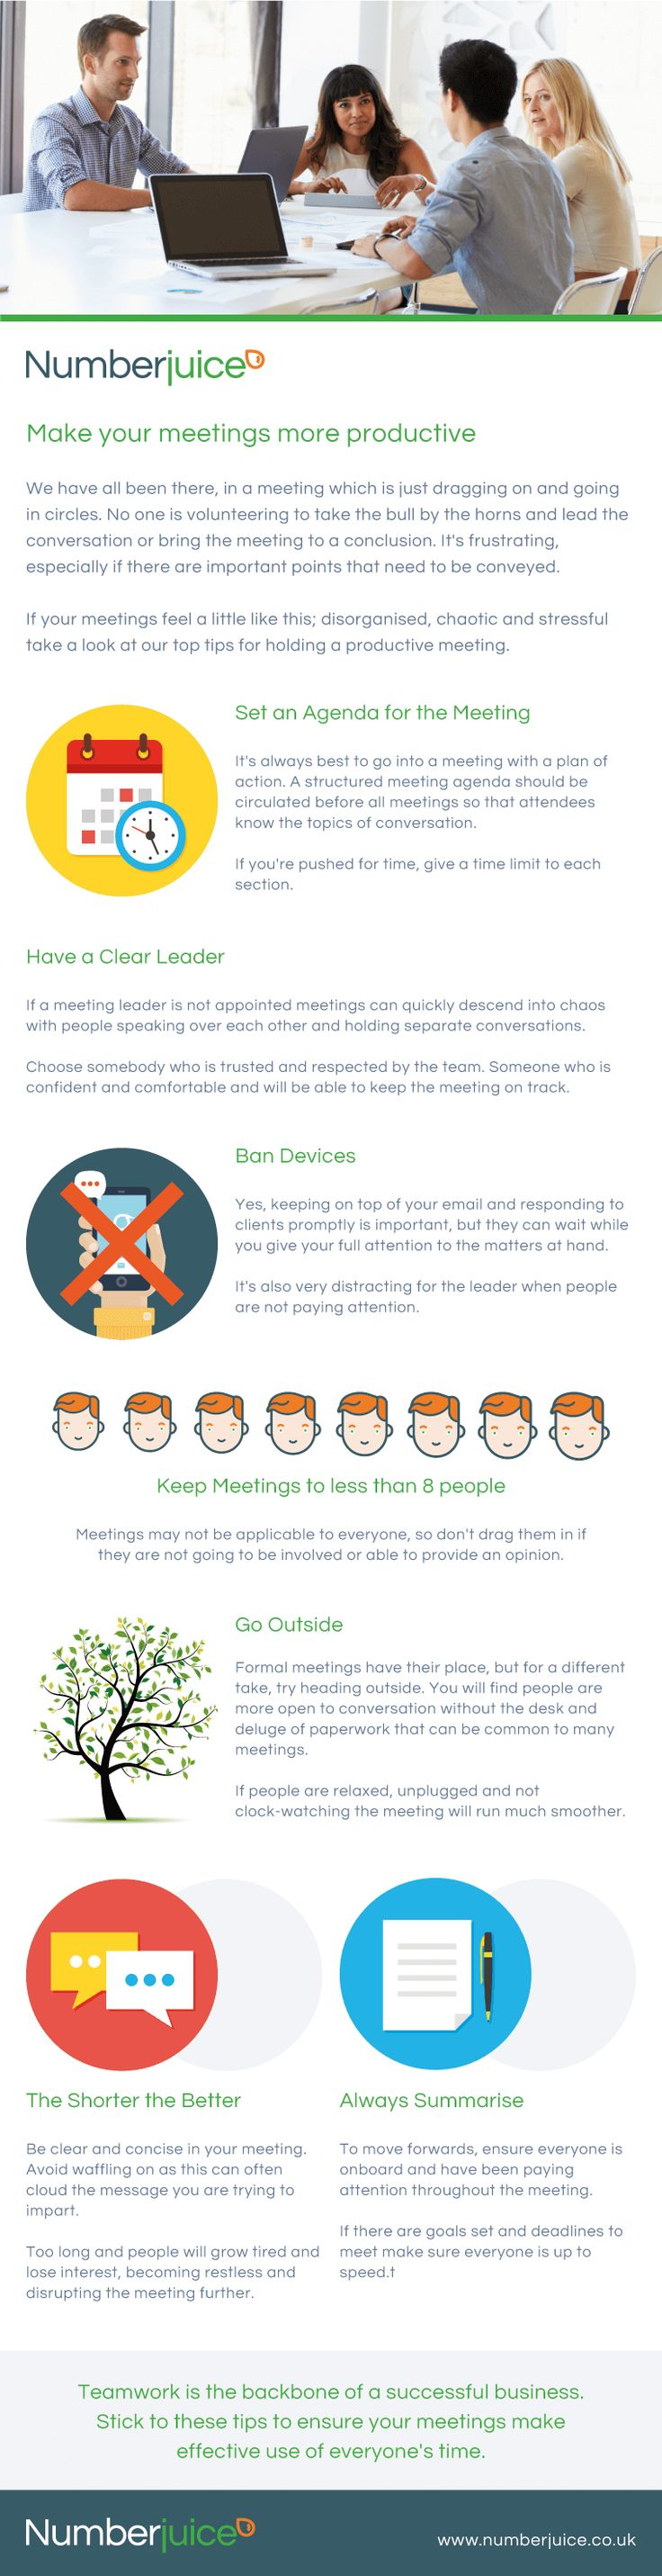 Infographic - How to make meetings more productive